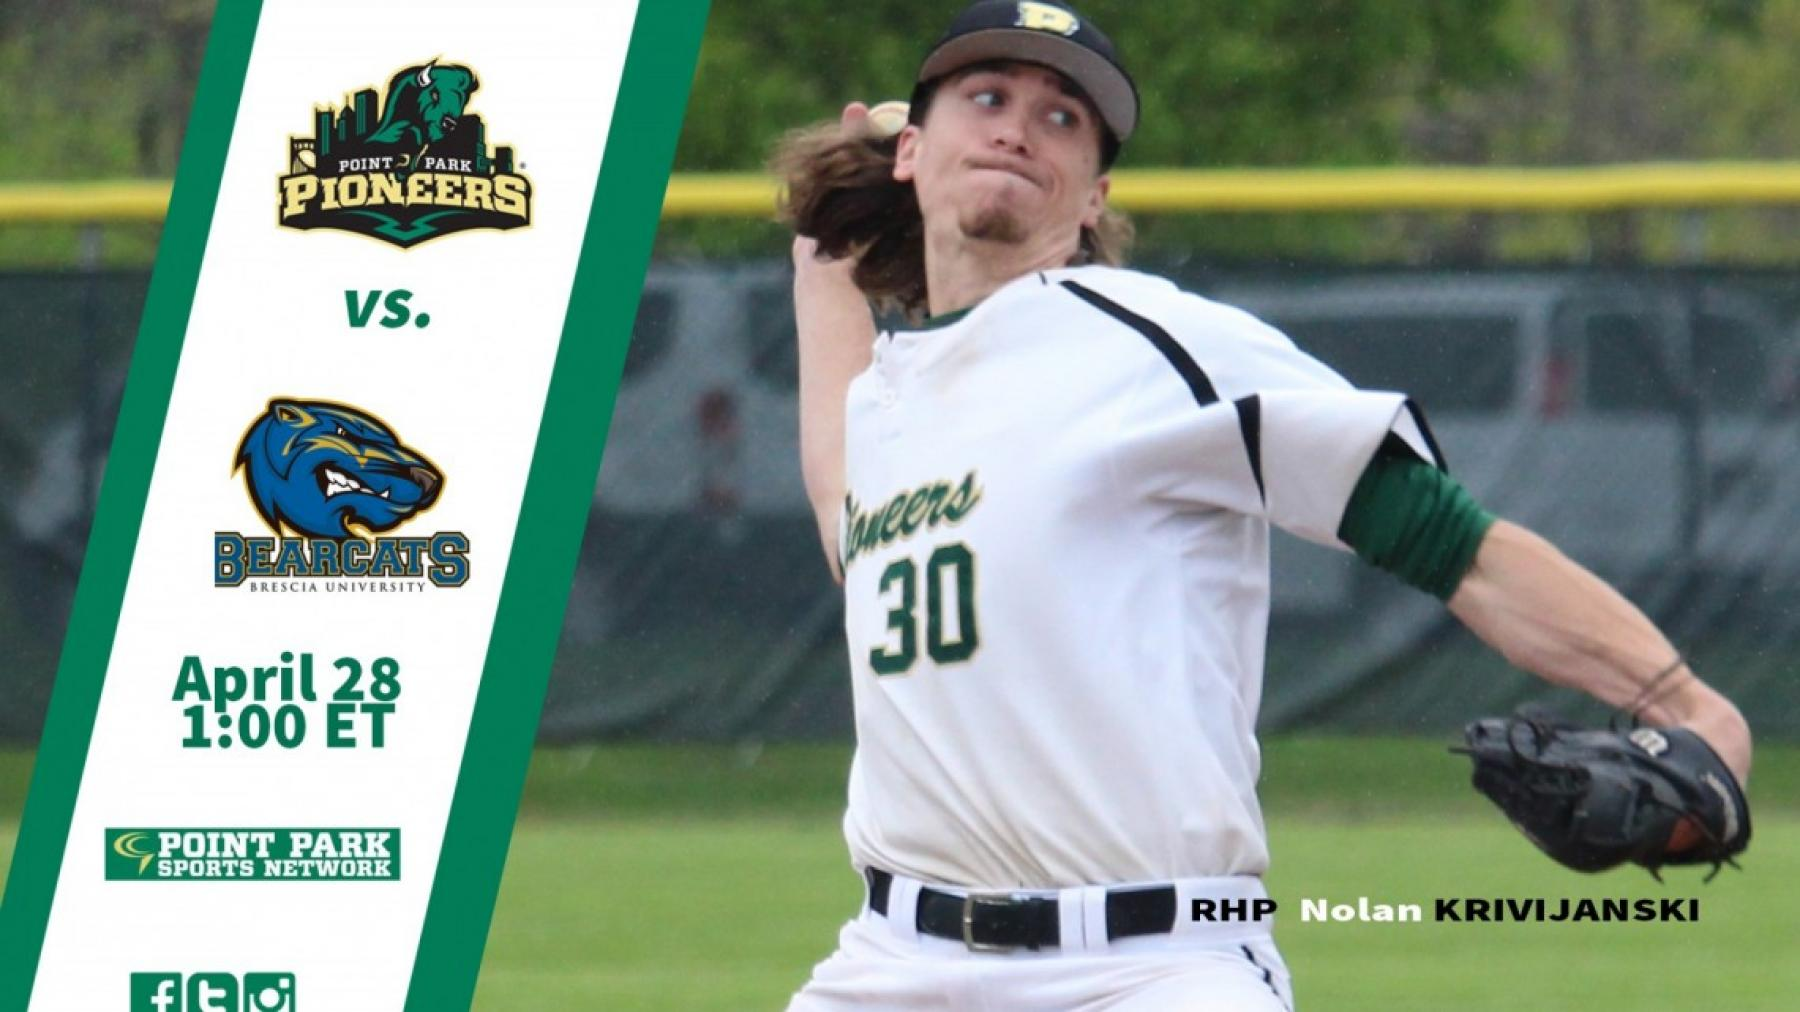 GAMEDAY: @PPUBaseball hosts Brescia Friday at 1 pm ET (DH)